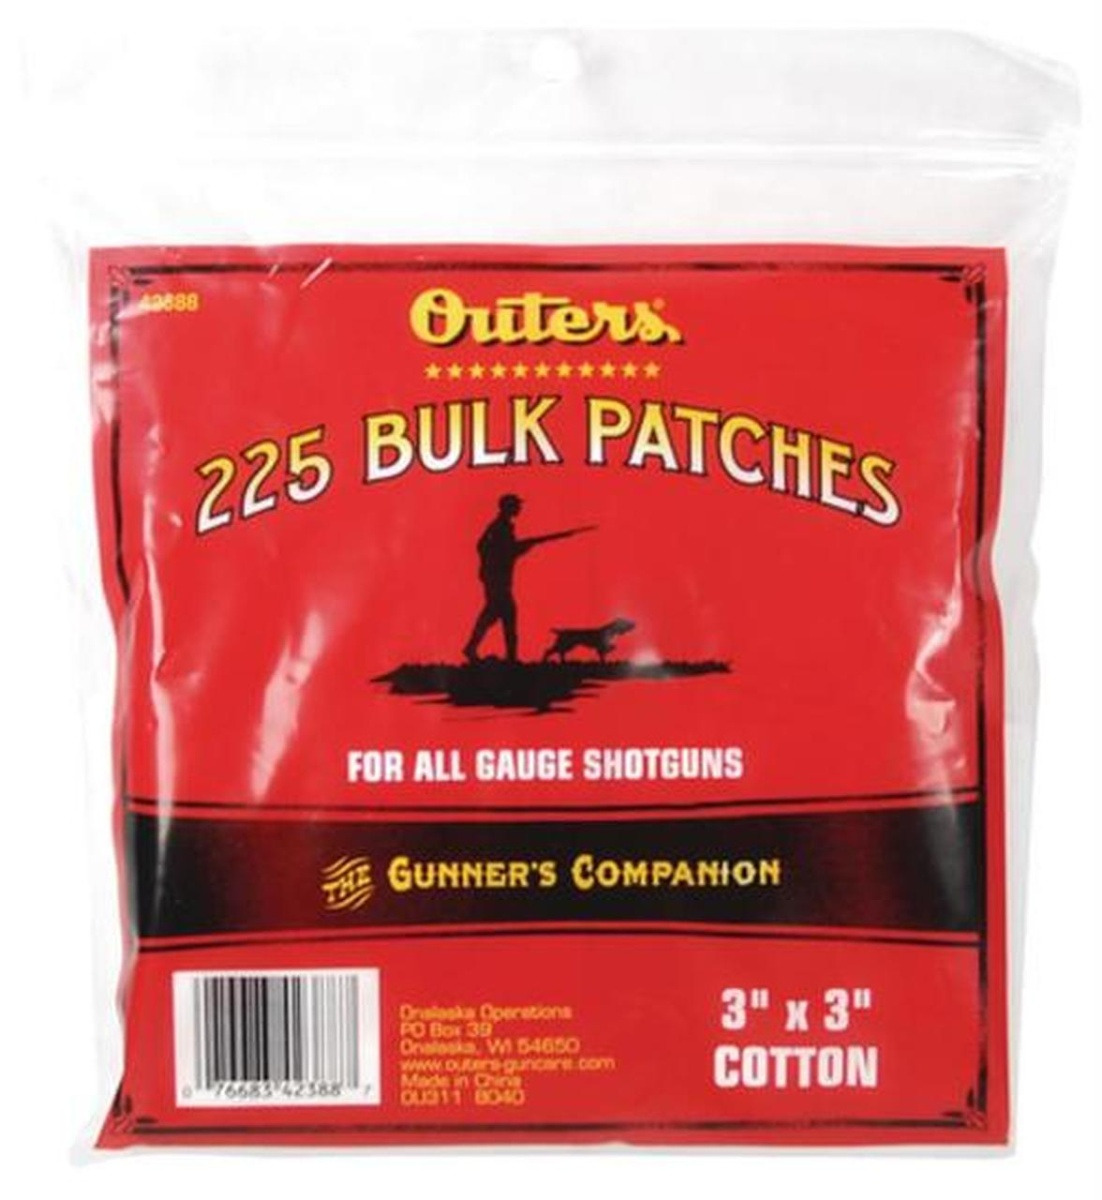 Outers Bulk Patches Shotgun 225 Pack